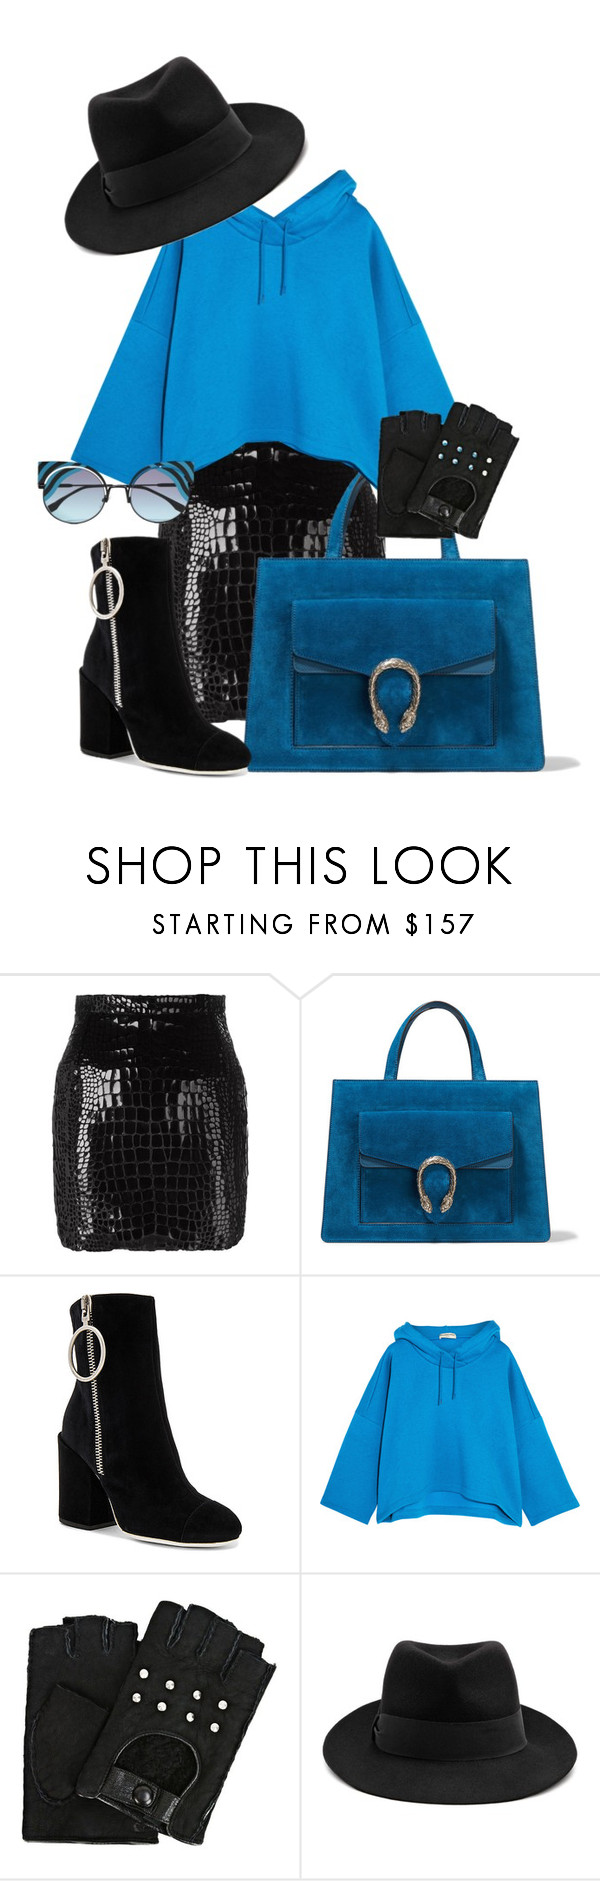 """""""Untitled #1456"""" by bettinakhrn ❤ liked on Polyvore featuring Yves Saint Laurent, Gucci, Off-White, Balenciaga, Karl Lagerfeld, STELLA McCARTNEY and Fendi"""